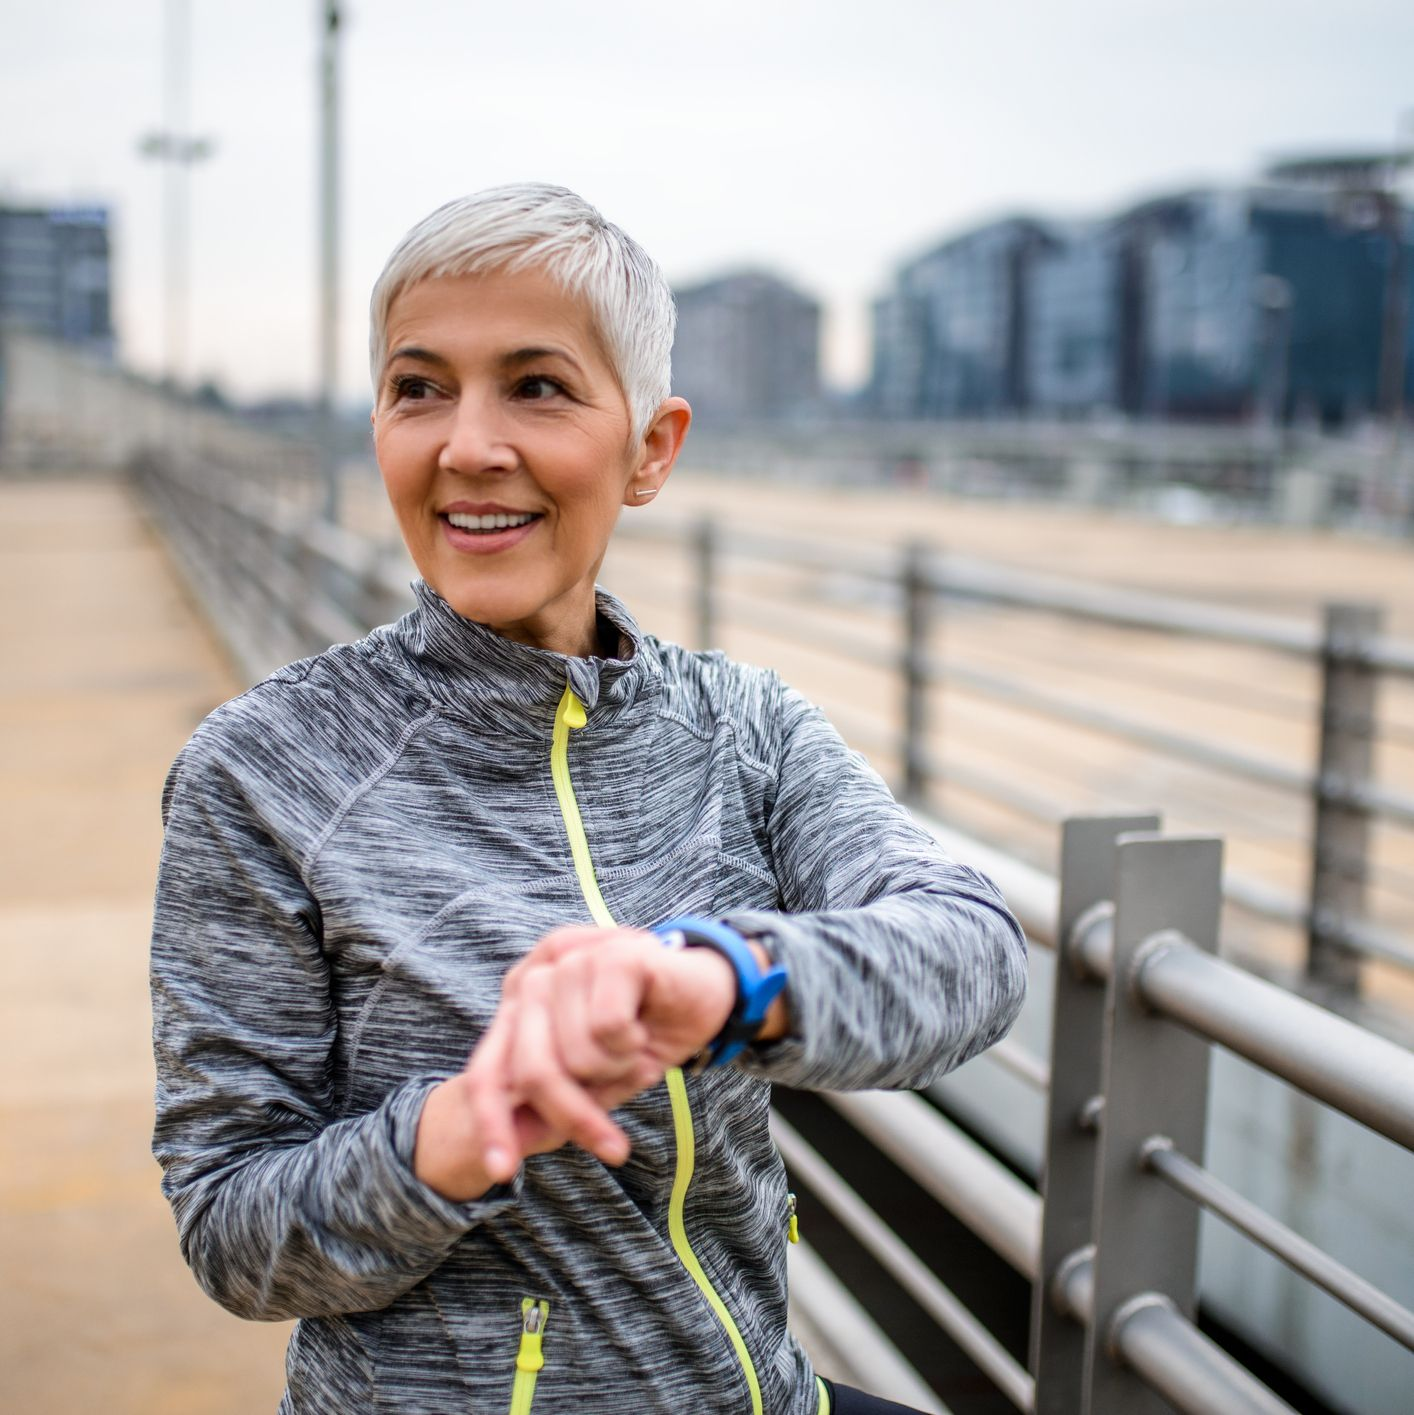 Started Running Later in Life? Here's How Your Body Benefits